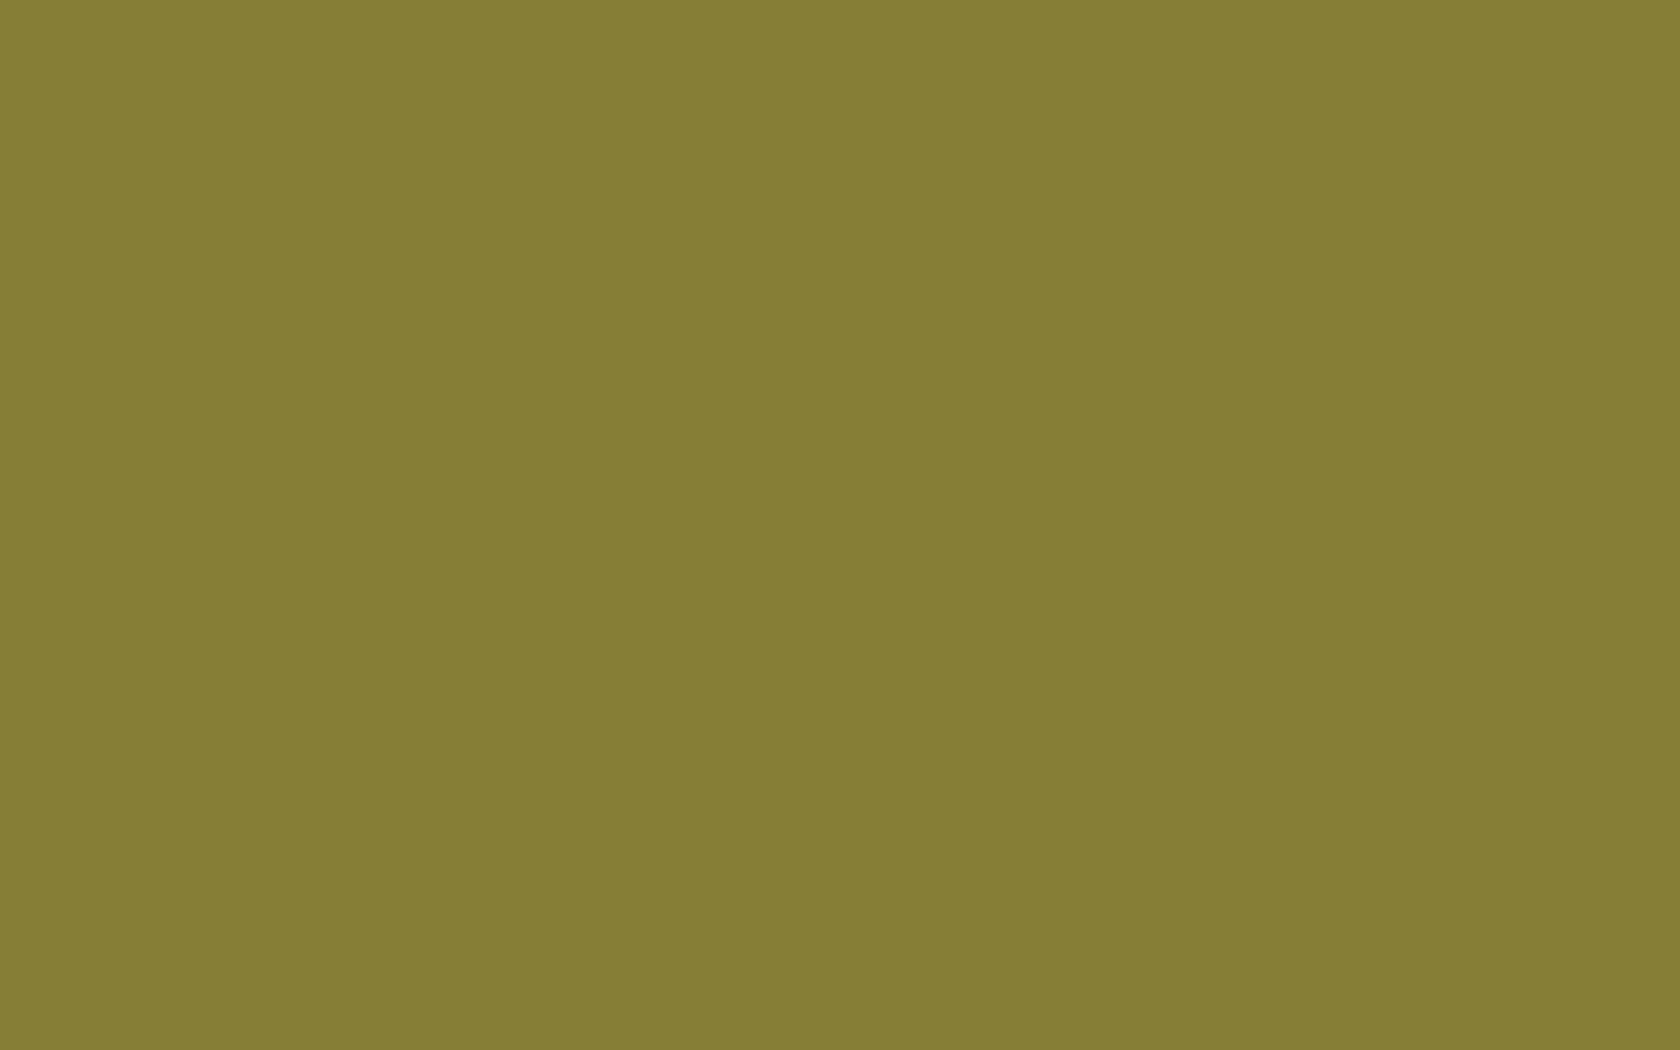 1680x1050 Old Moss Green Solid Color Background